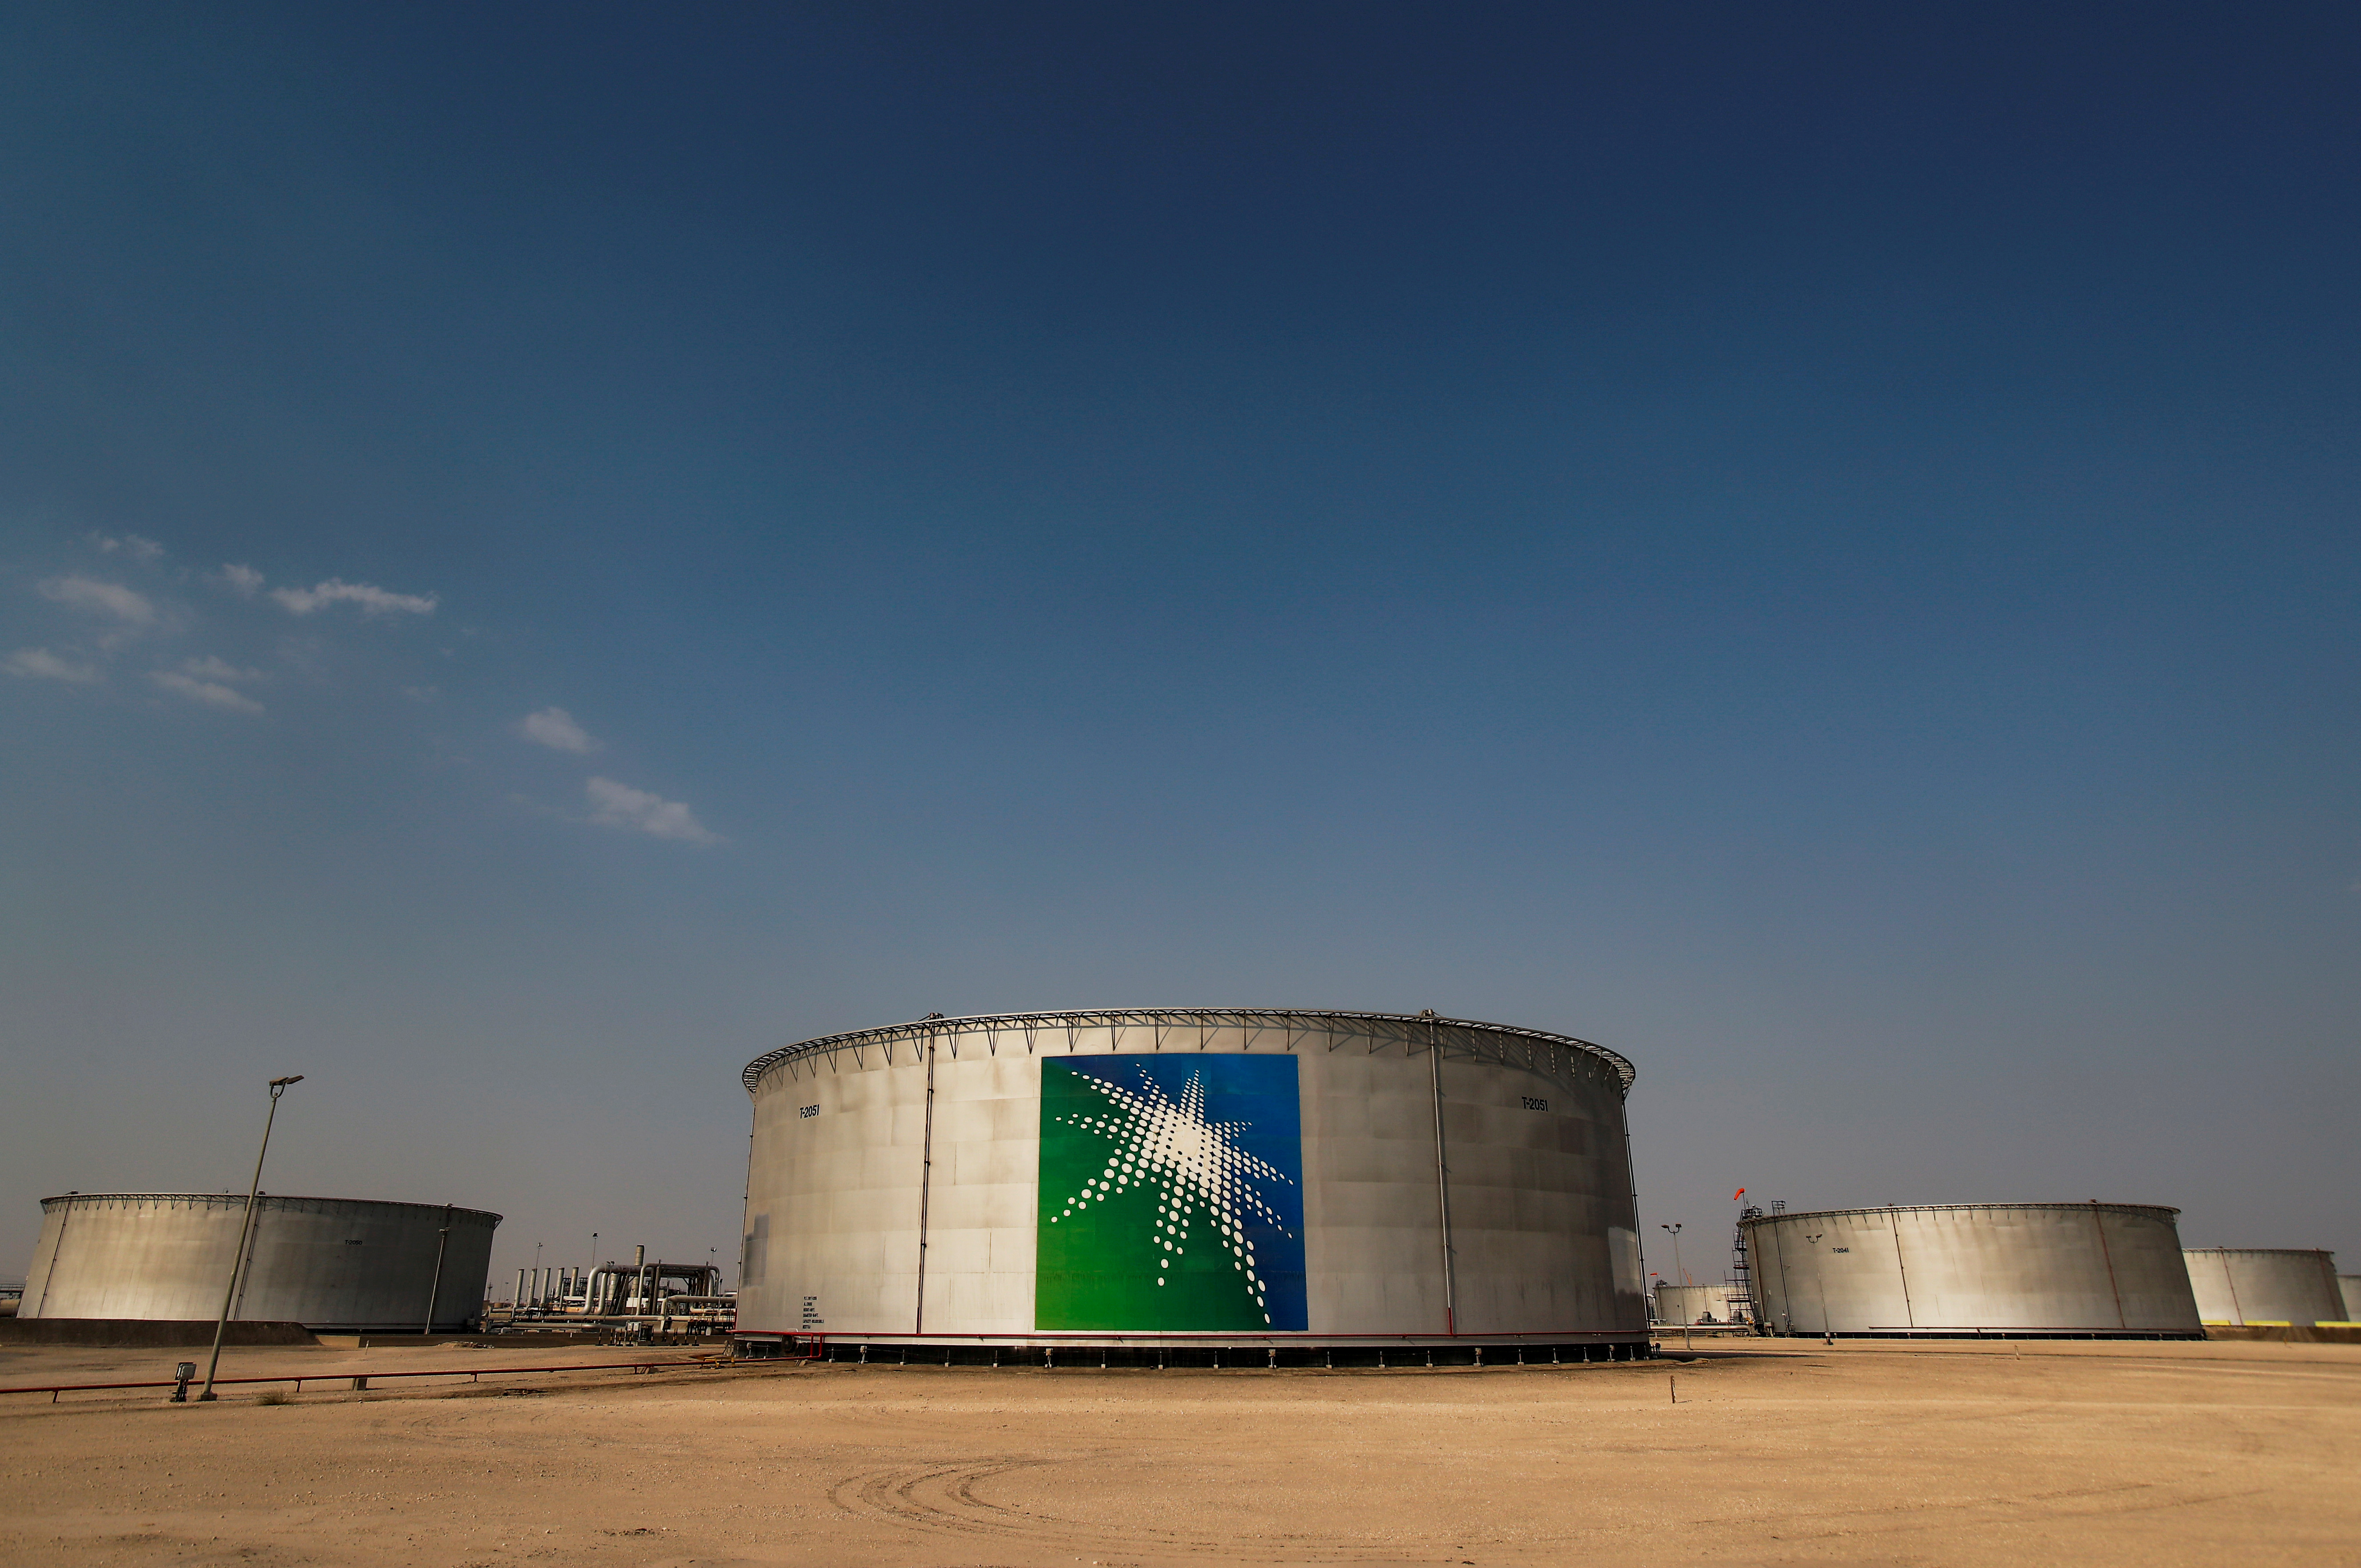 A view shows branded oil tanks at Saudi Aramco oil facility in Abqaiq, Saudi Arabia October 12, 2019. REUTERS/Maxim Shemetov/File Photo